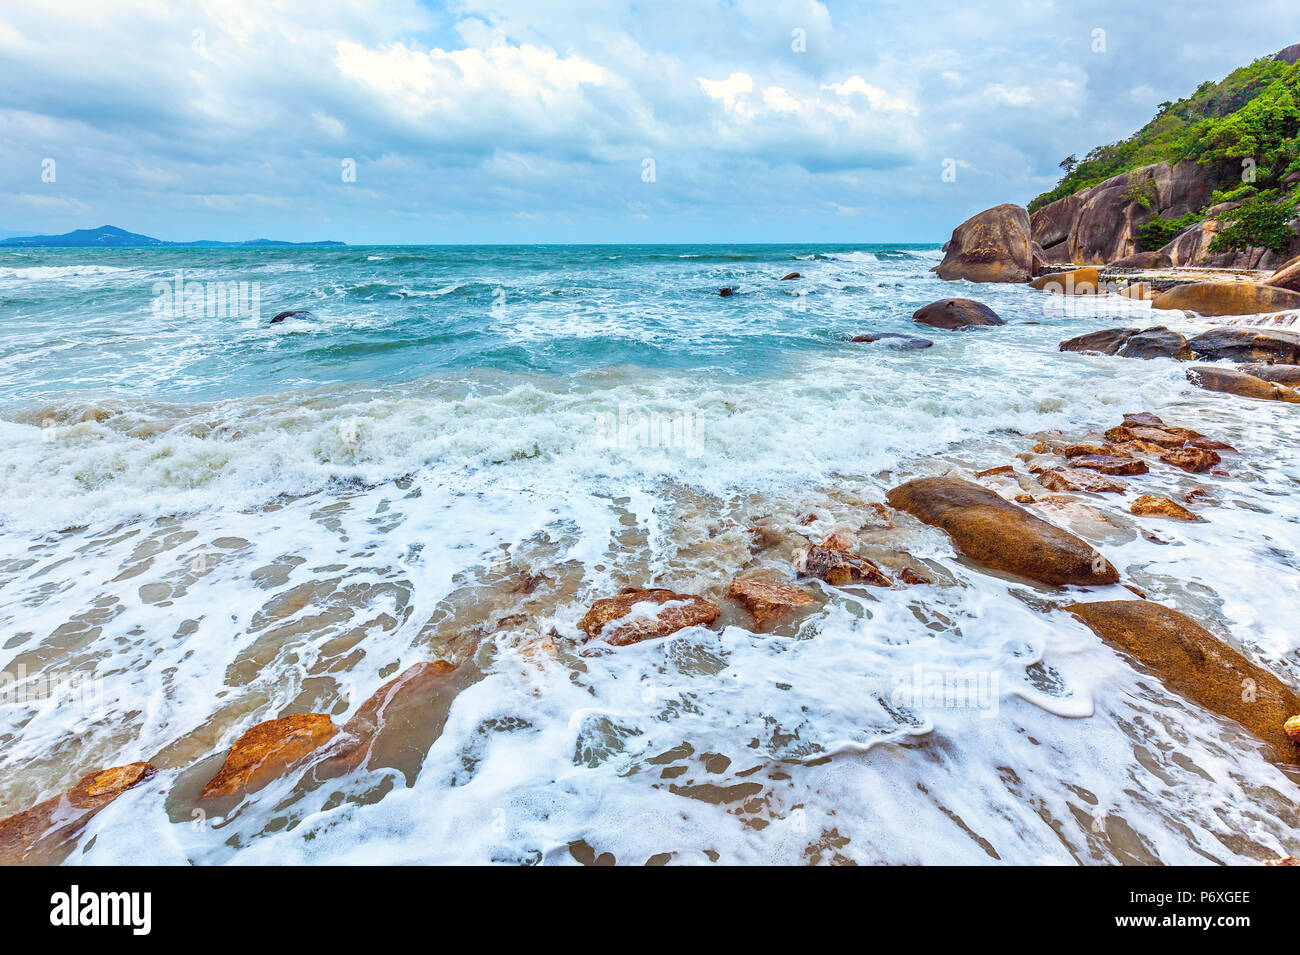 Storm on the Crystal Bay Beach. Koh Samui, Thailand. - Stock Image